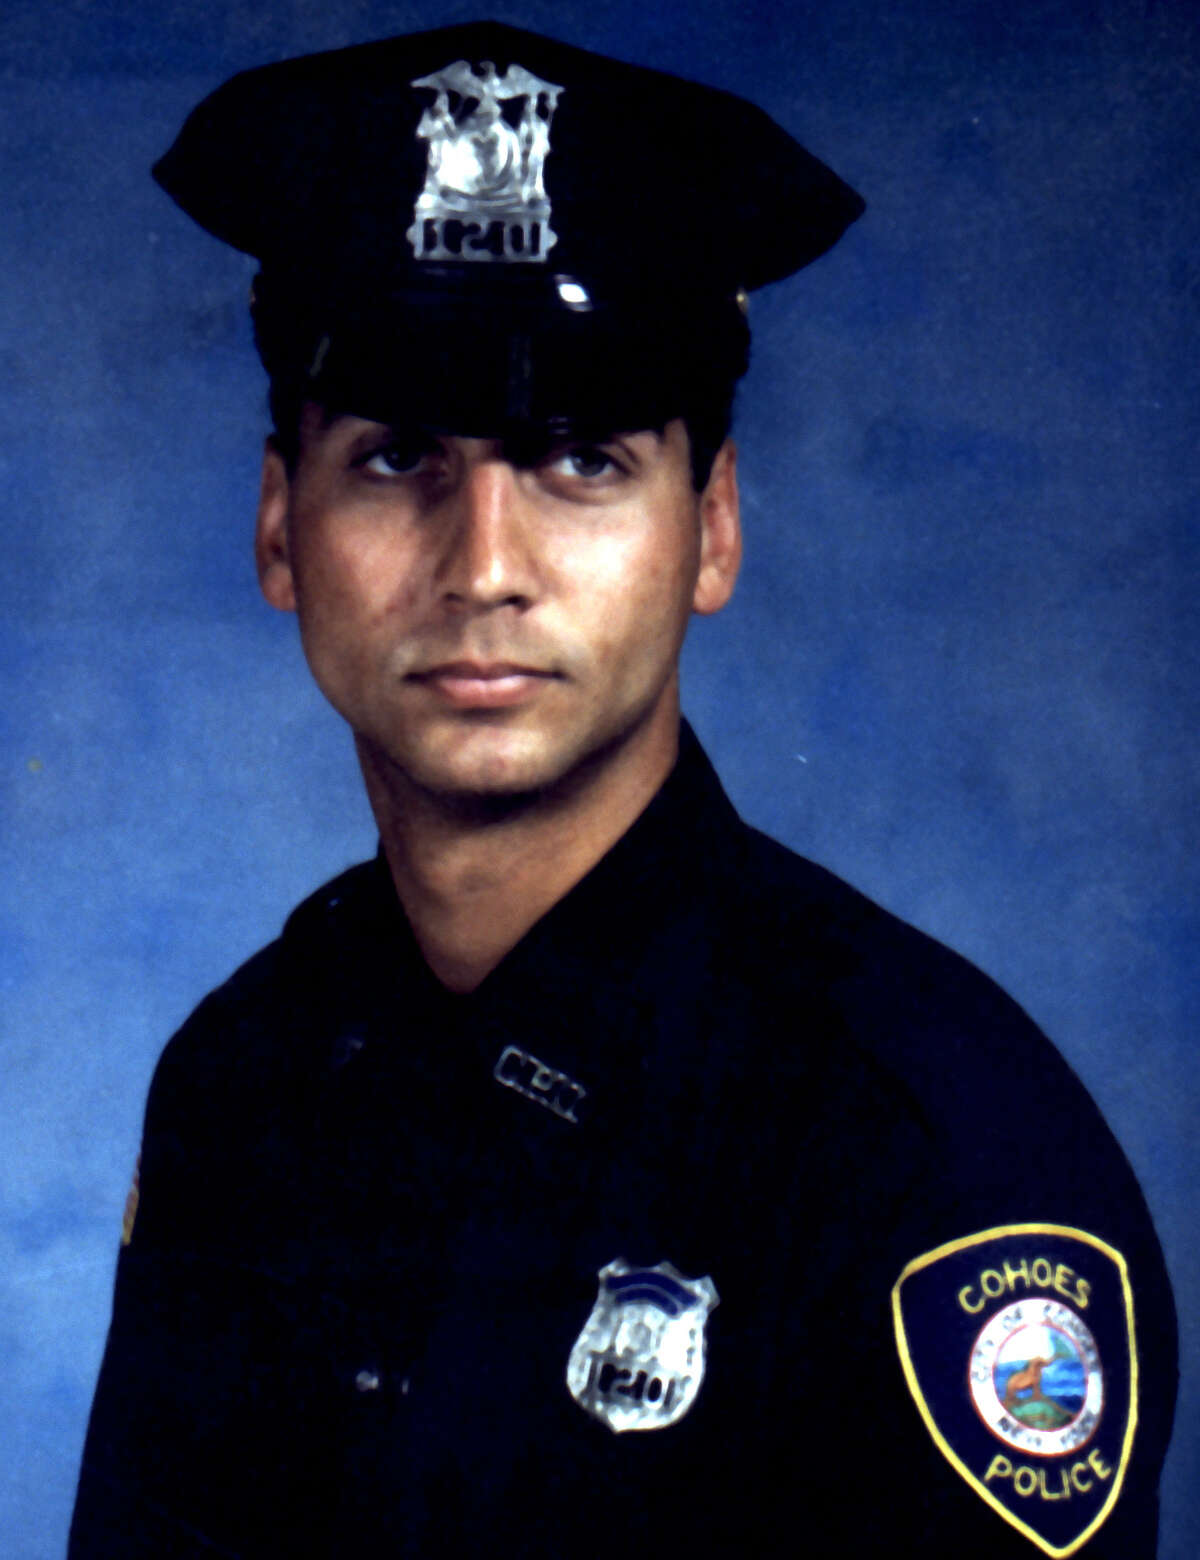 Former Cohoes police Officer Gary Ethier responded to multiple calls for help from a woman who accused Mayor Shawn Morse of abuse in the 1990s. (Undated photo)